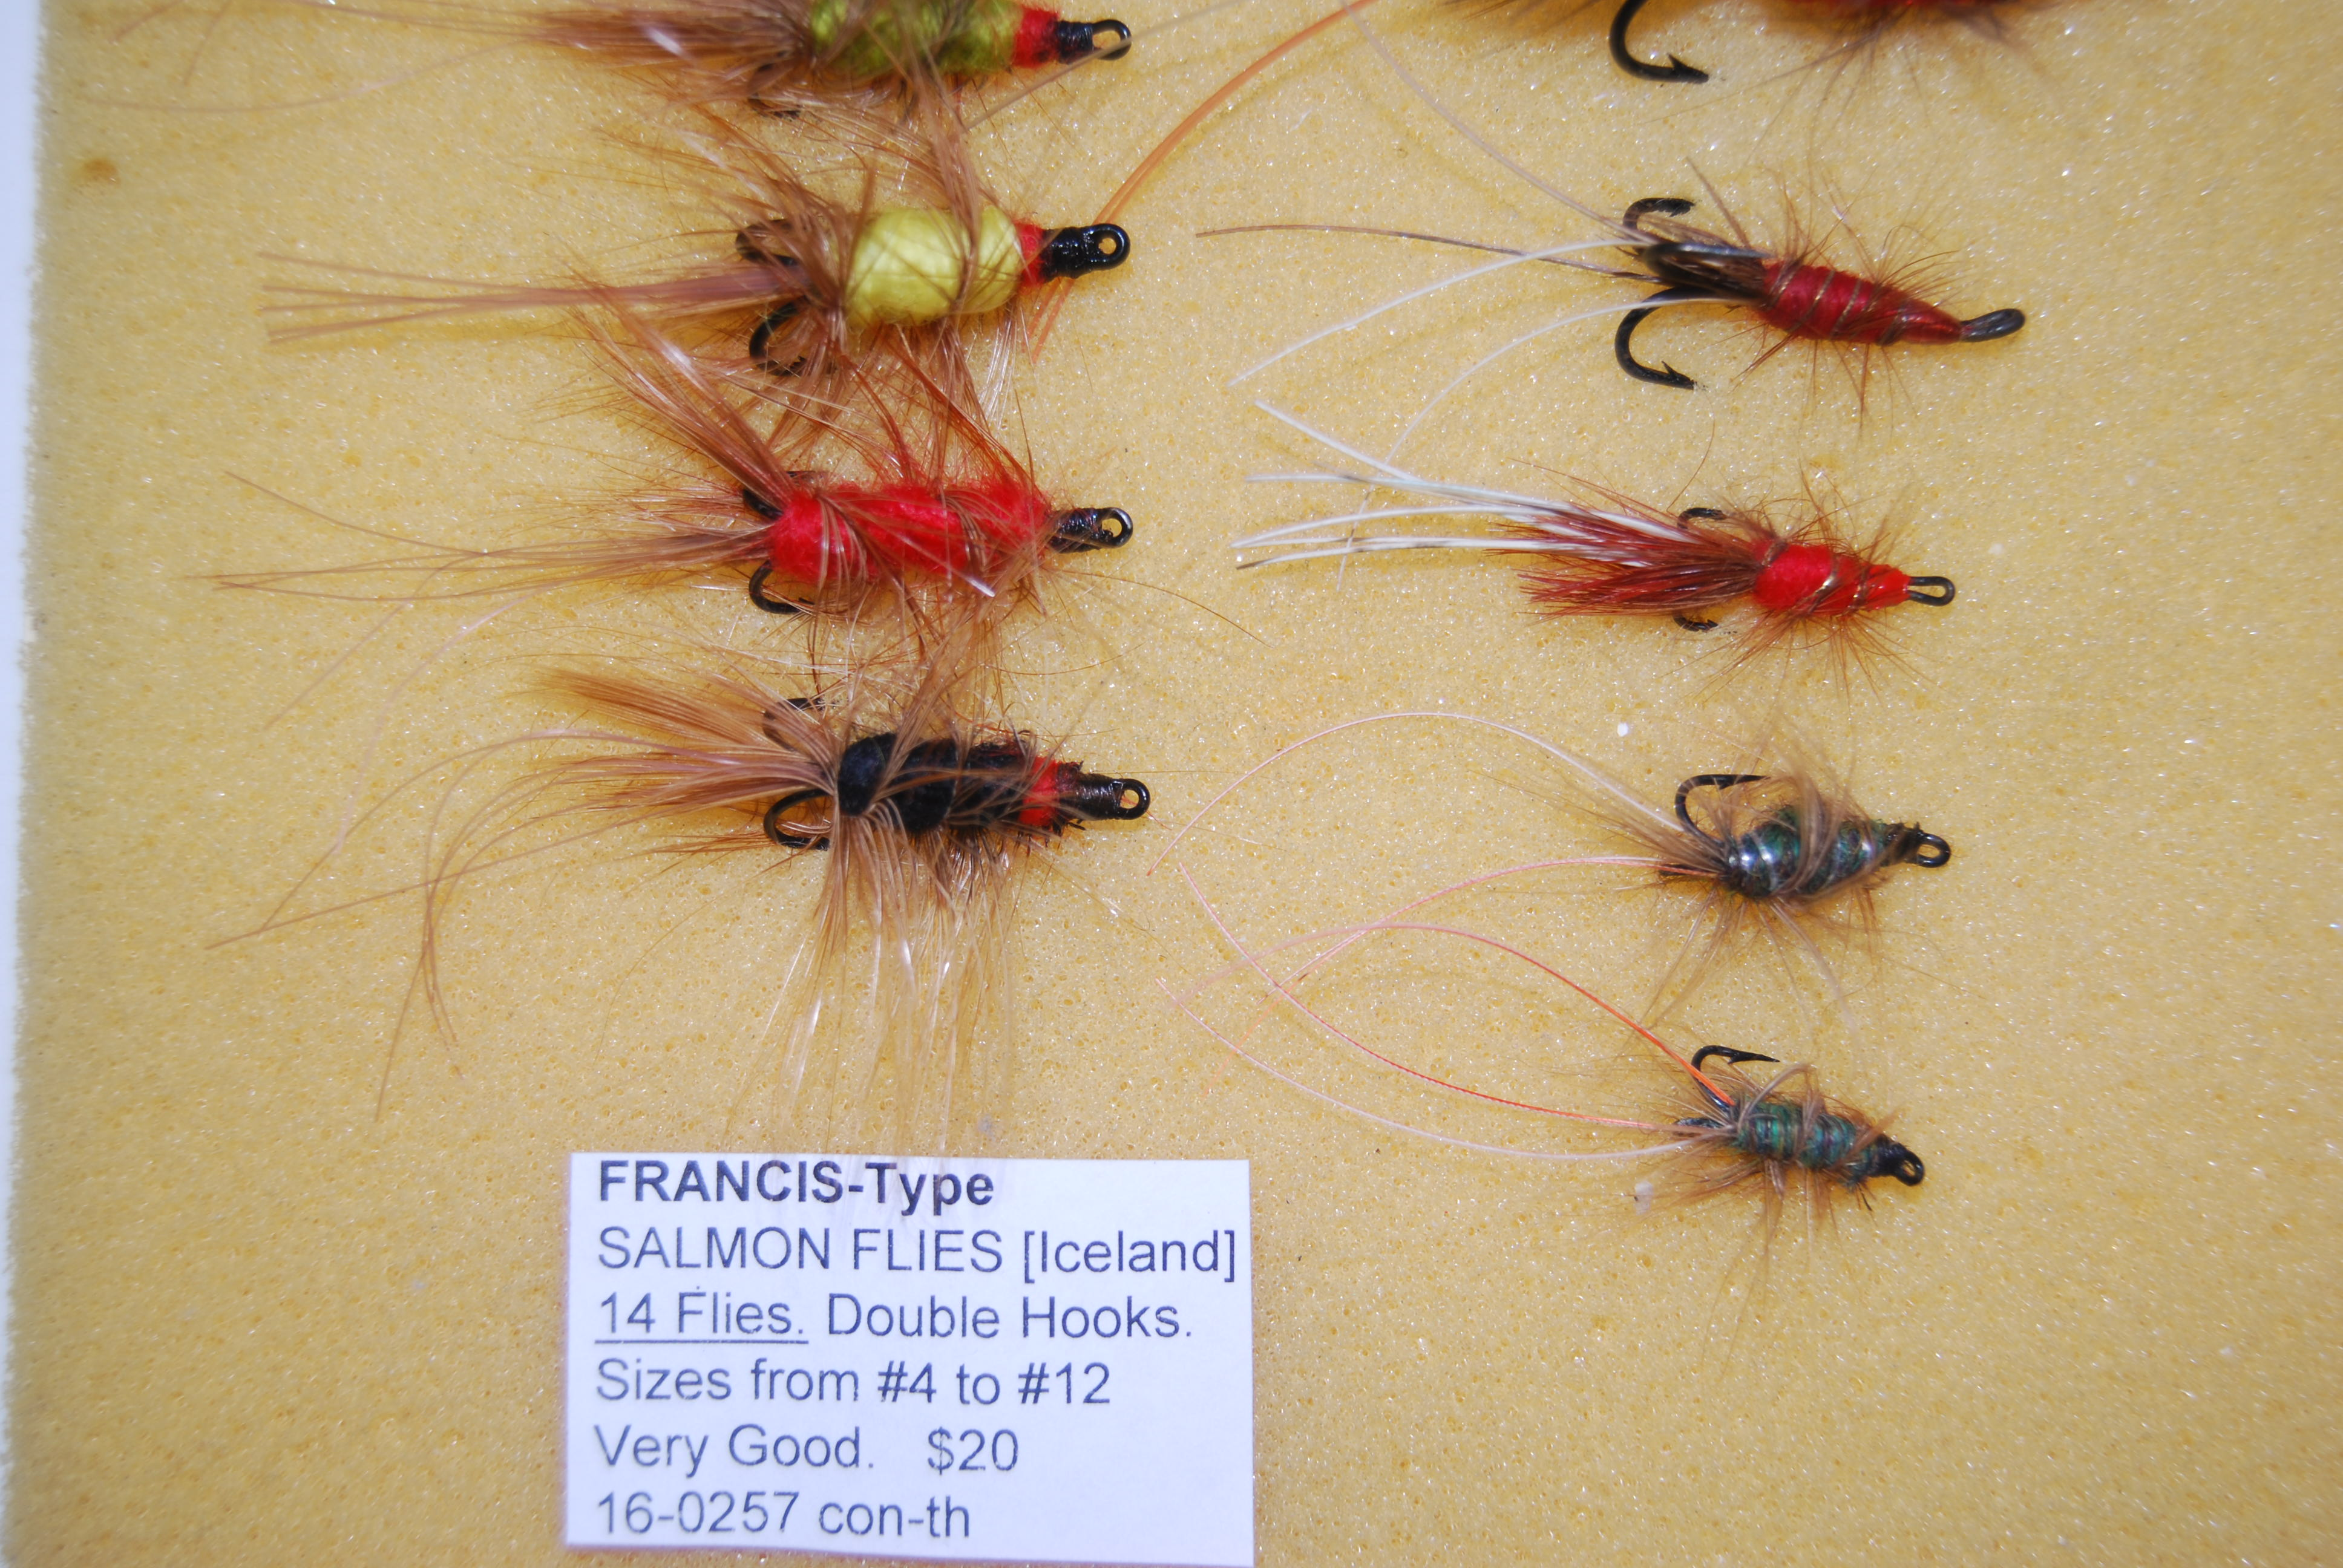 Image for FRANCIS-Type SALMON FLIES. 14 Flies. [13 double hooks, 1 treble hook] Various colors- Red, Black, Orange, Yellow, etc. Sizes 1- #2; 2-#4; 8-#6; 2-#10; 1-#12.